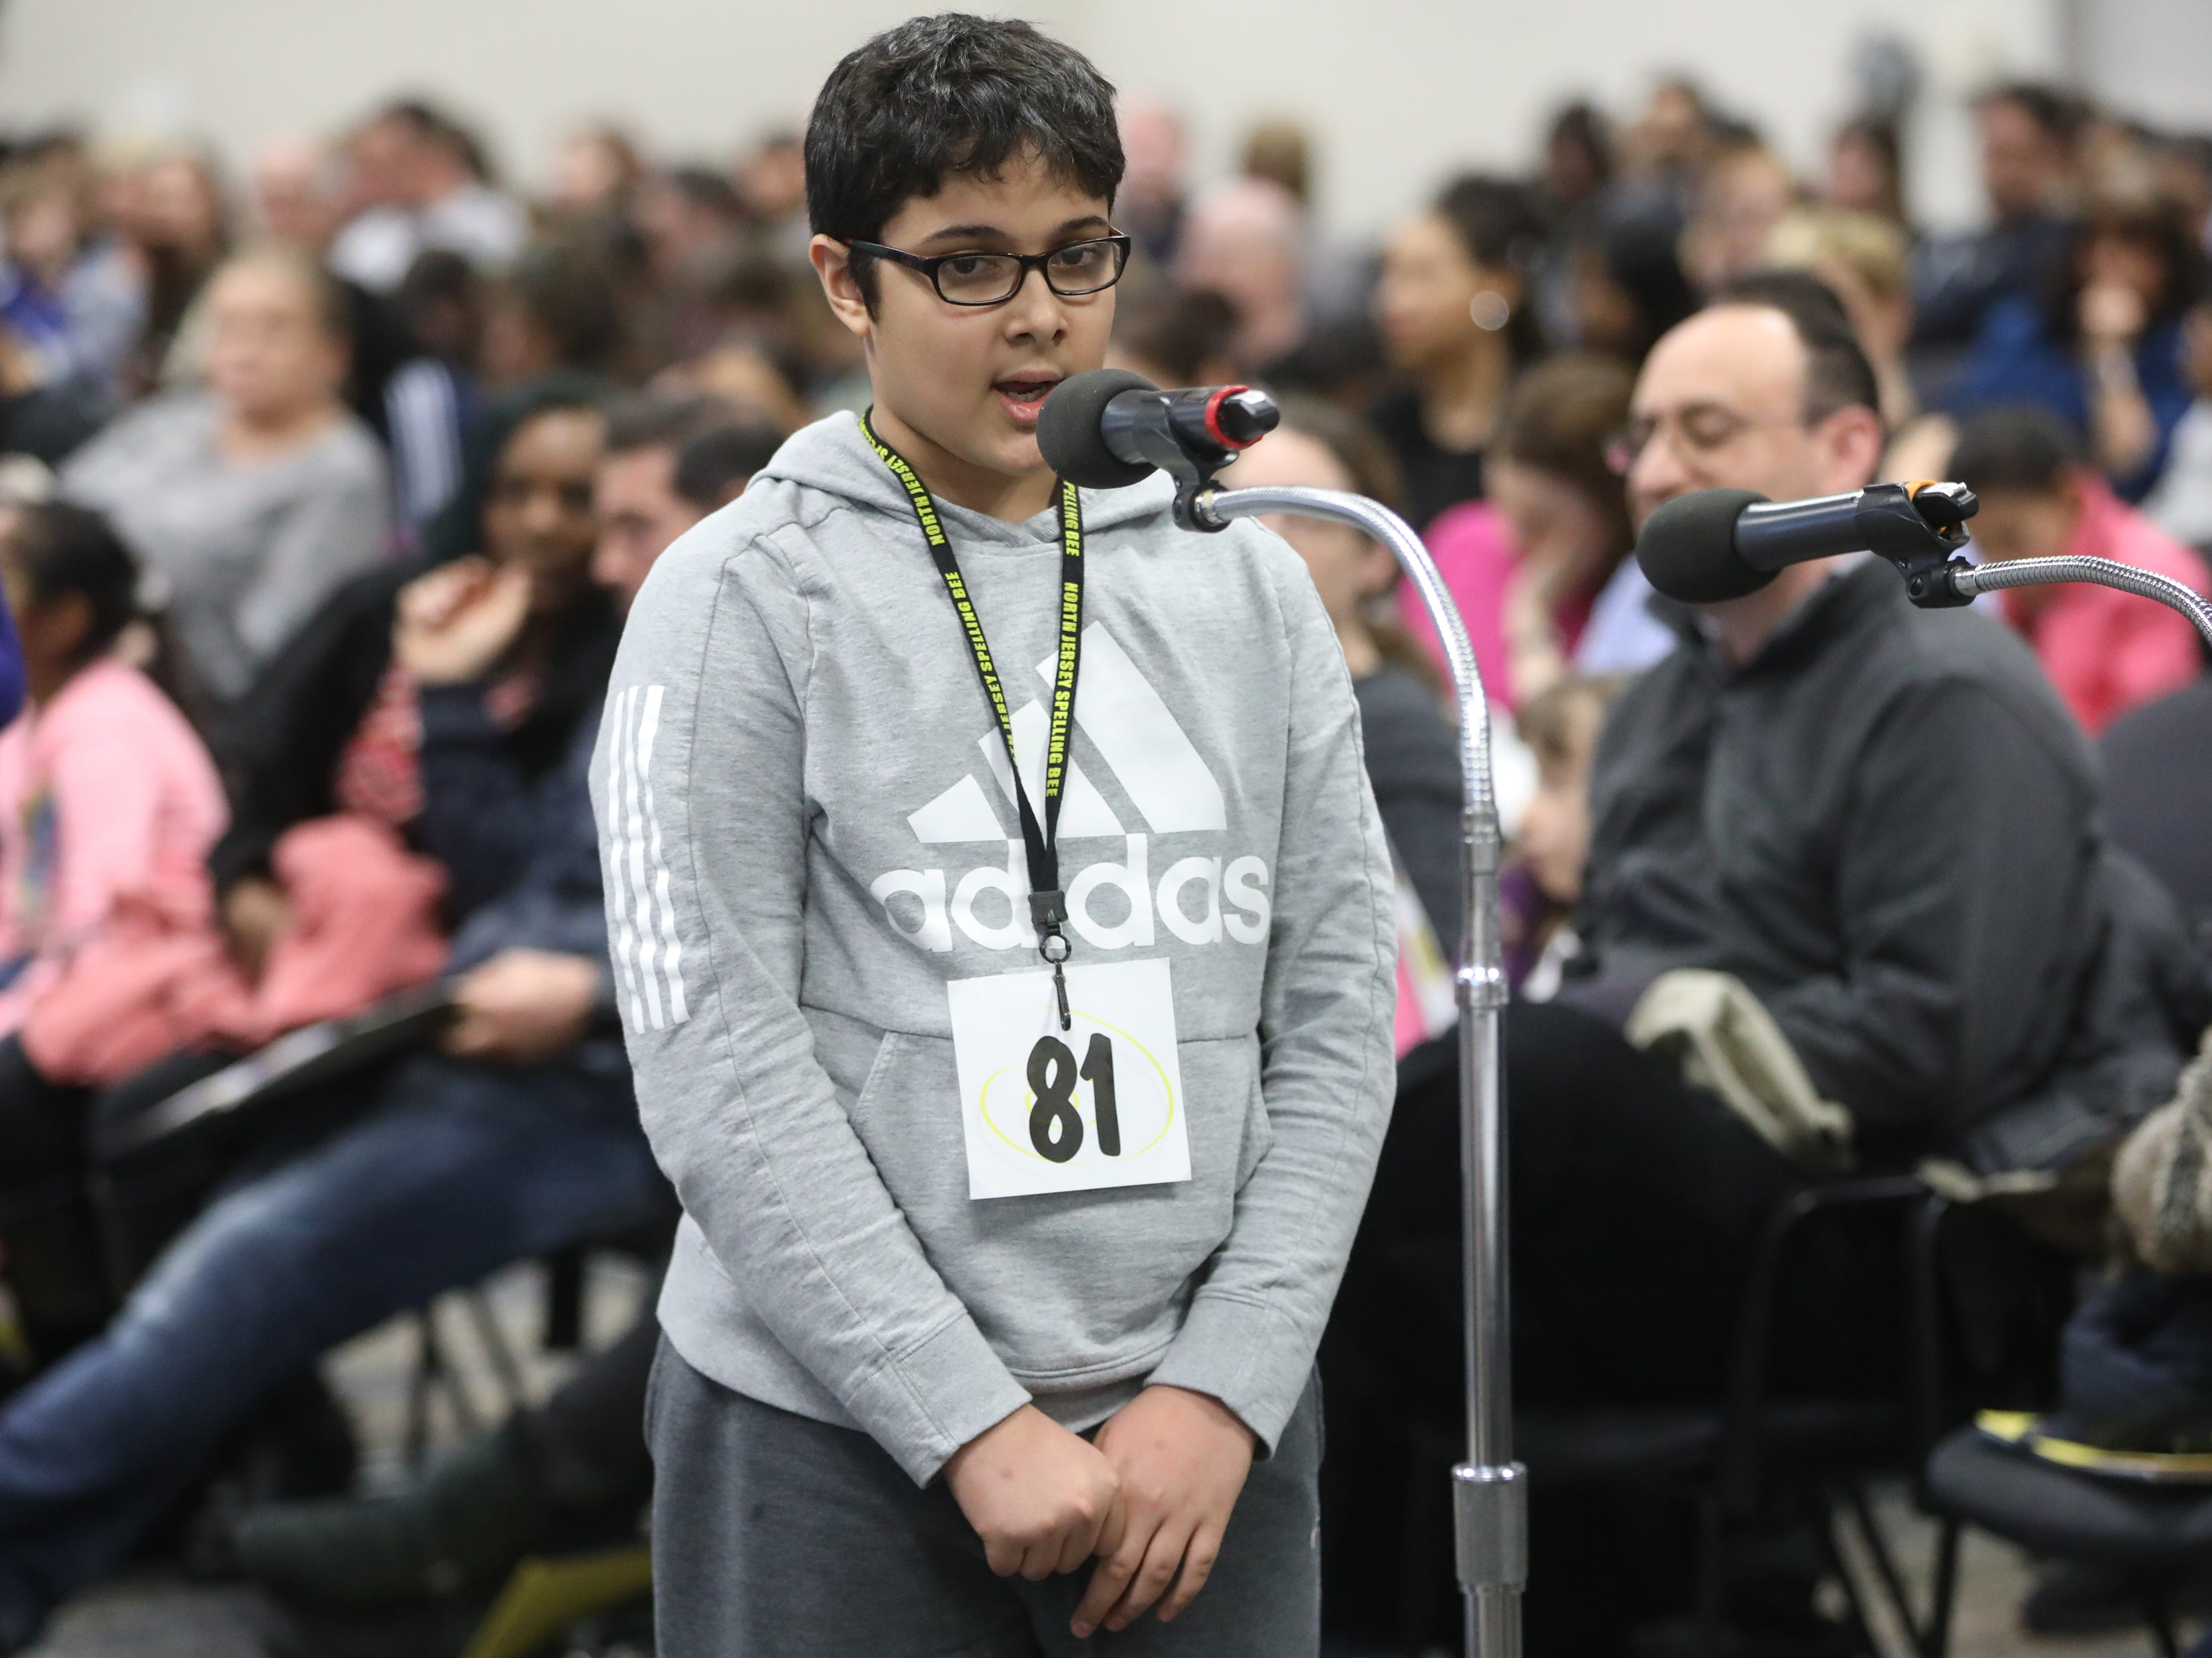 Aarush Santoshi, of Tenafly, competes in the first round of the 2019 North Jersey Spelling Bee, in Paramus. Thursday, March 14, 2019